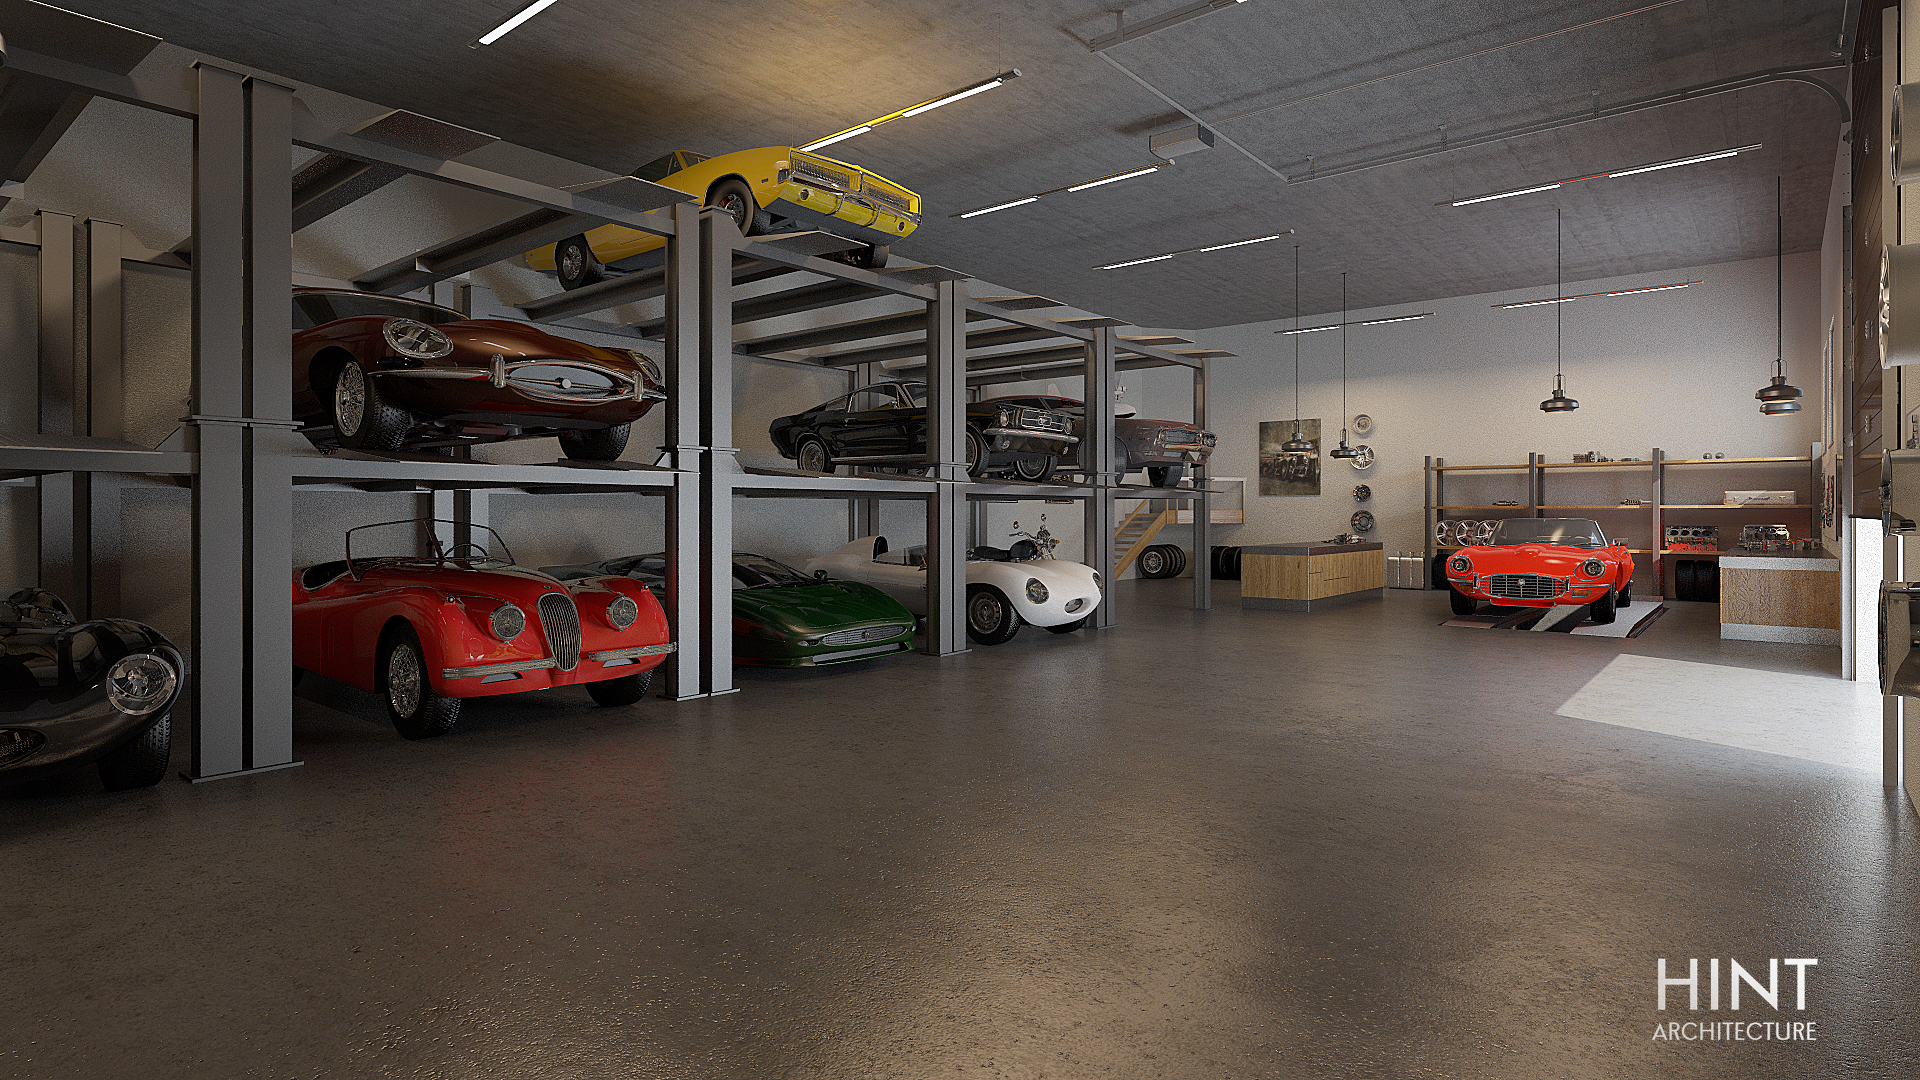 The car storage room